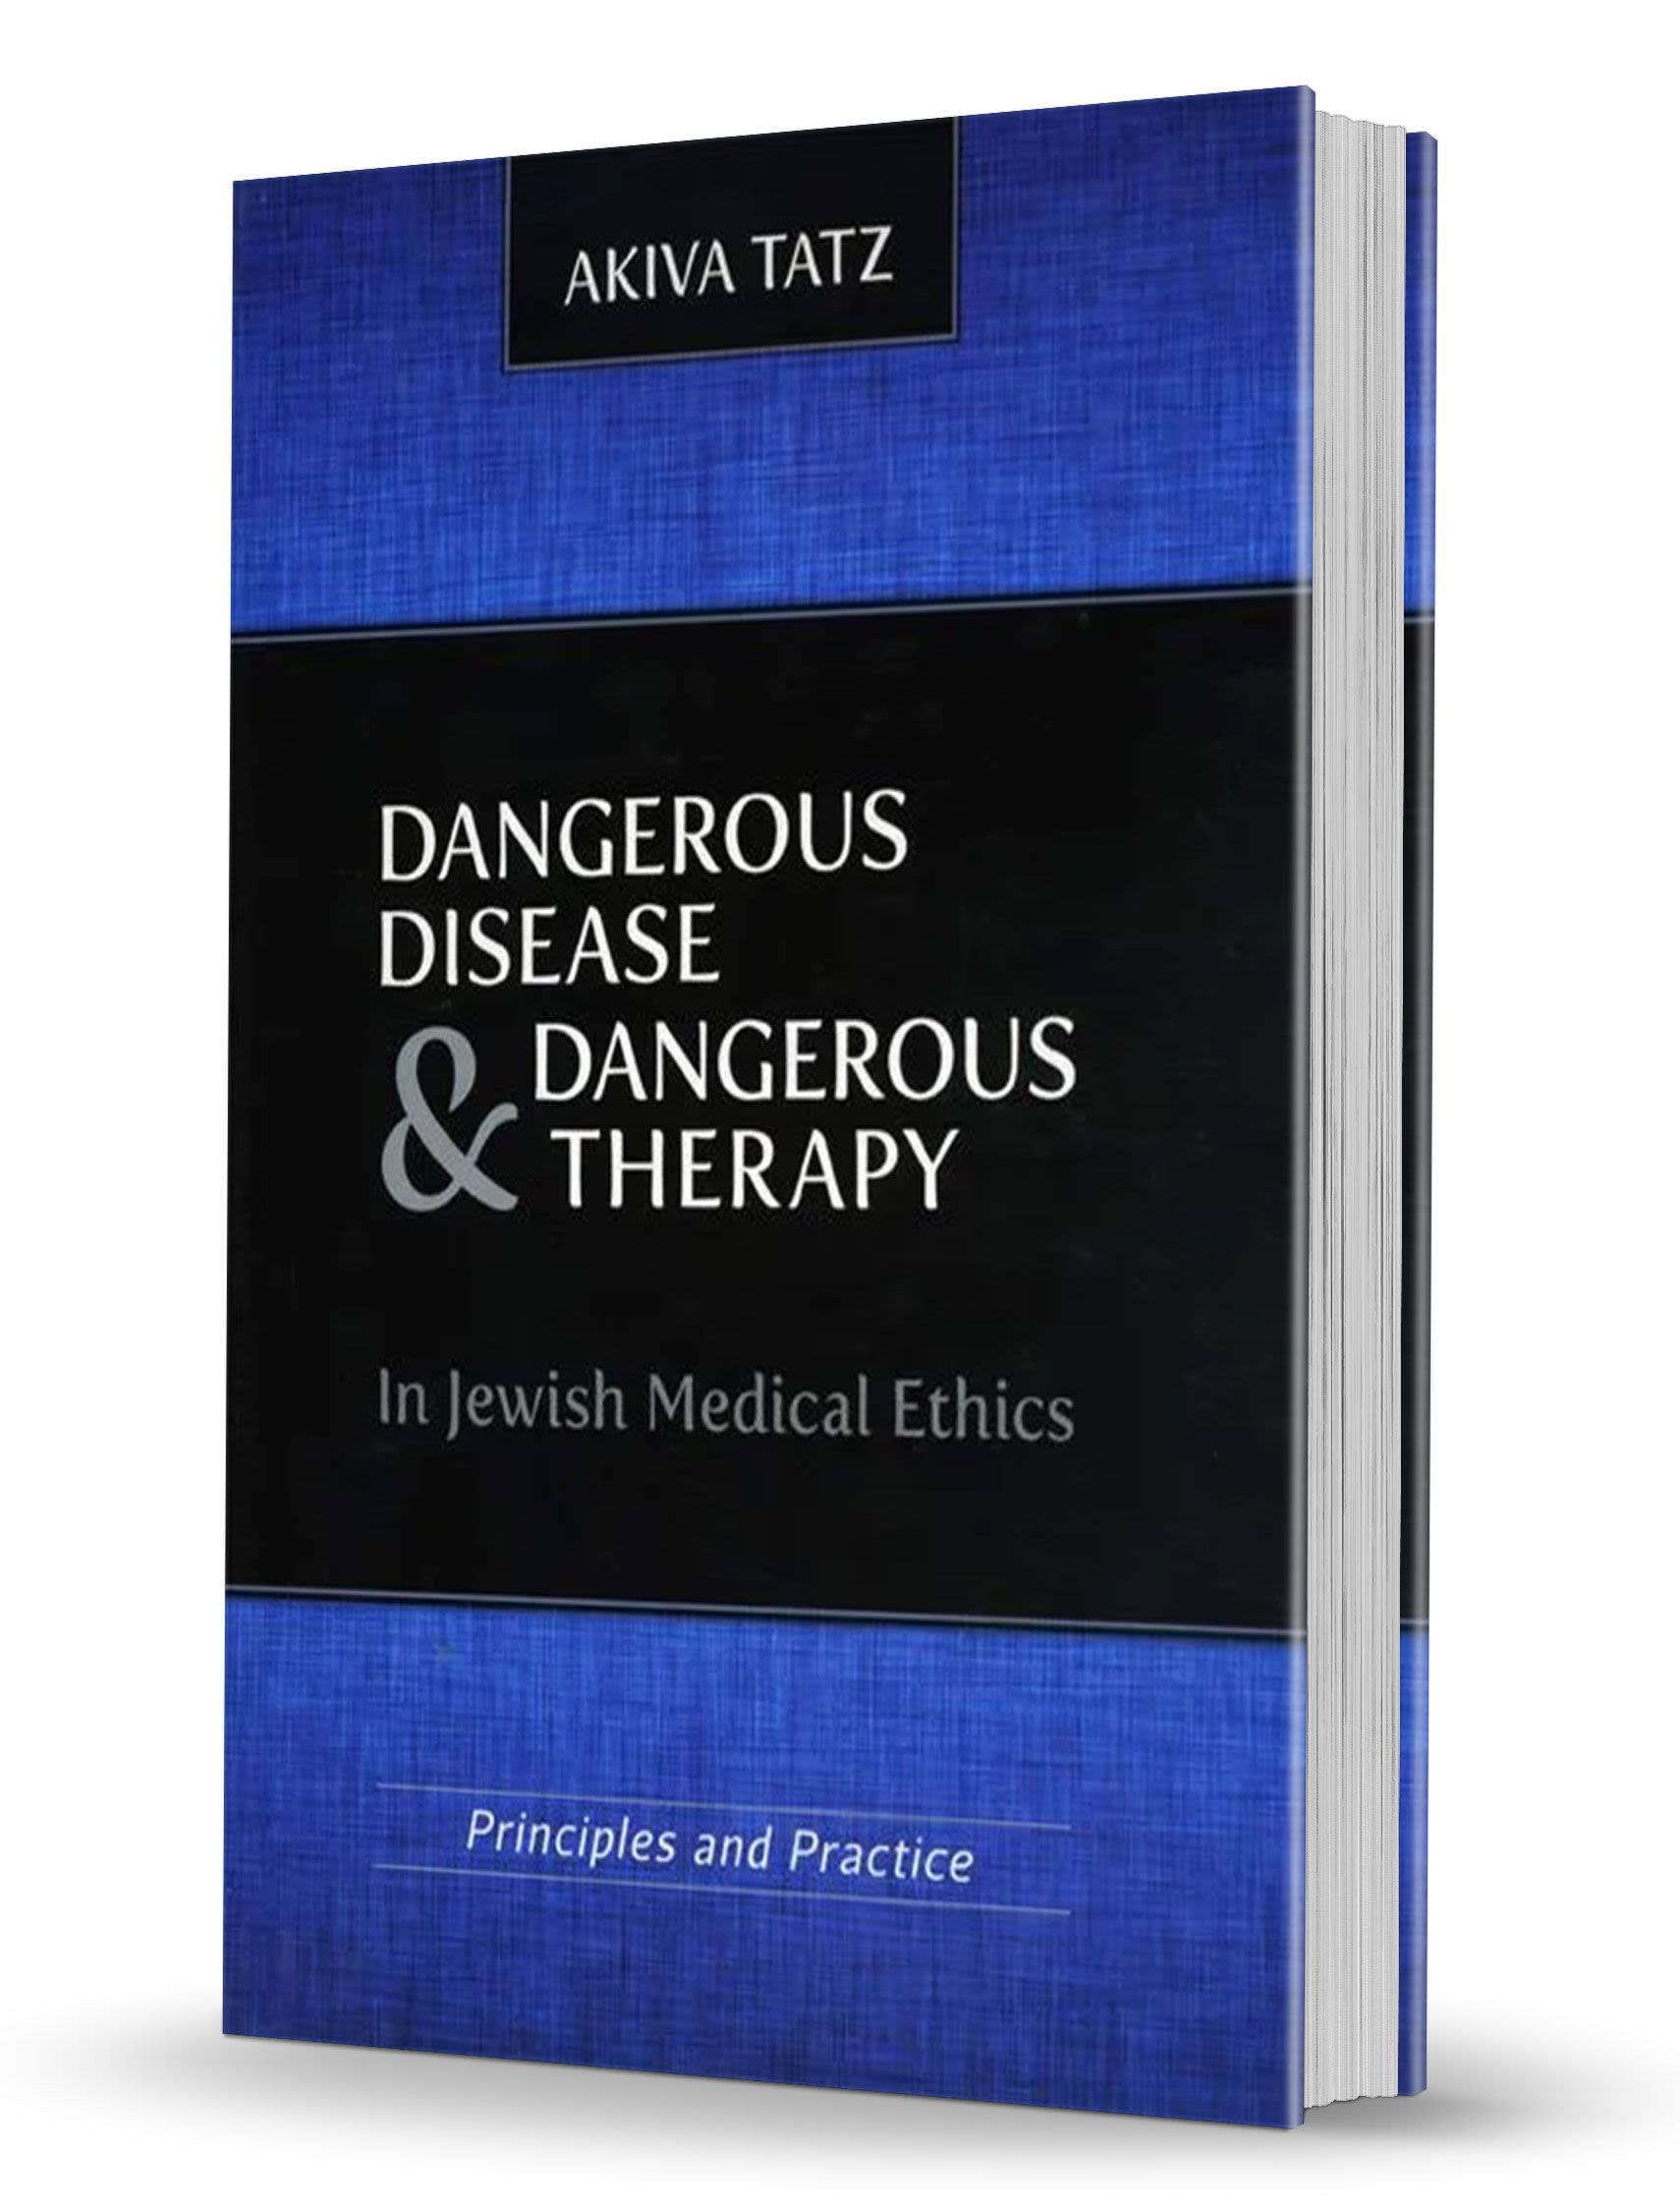 Dangerous Disease & Dangerous Therapy - Rabbi Akiva Tatz's